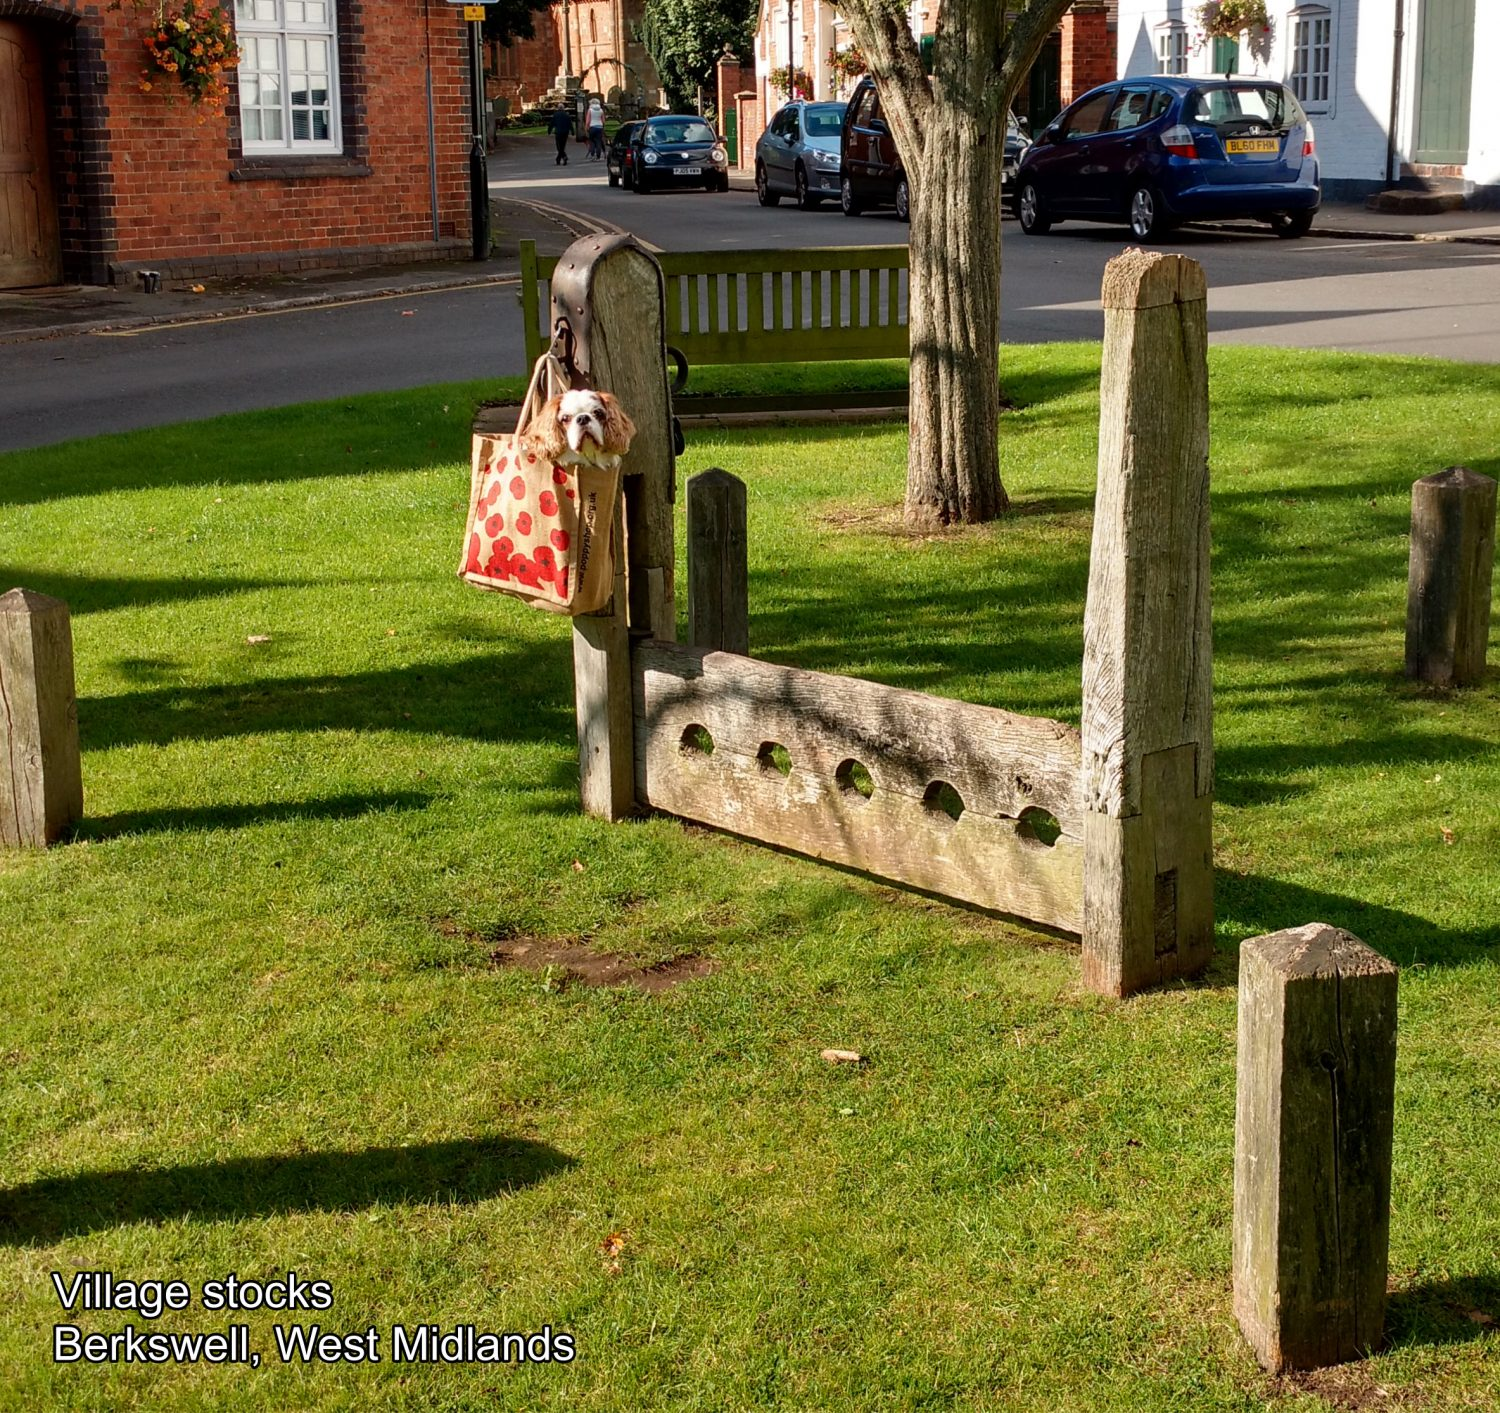 JUNE - Village stocks, Berkswell, West Midlands